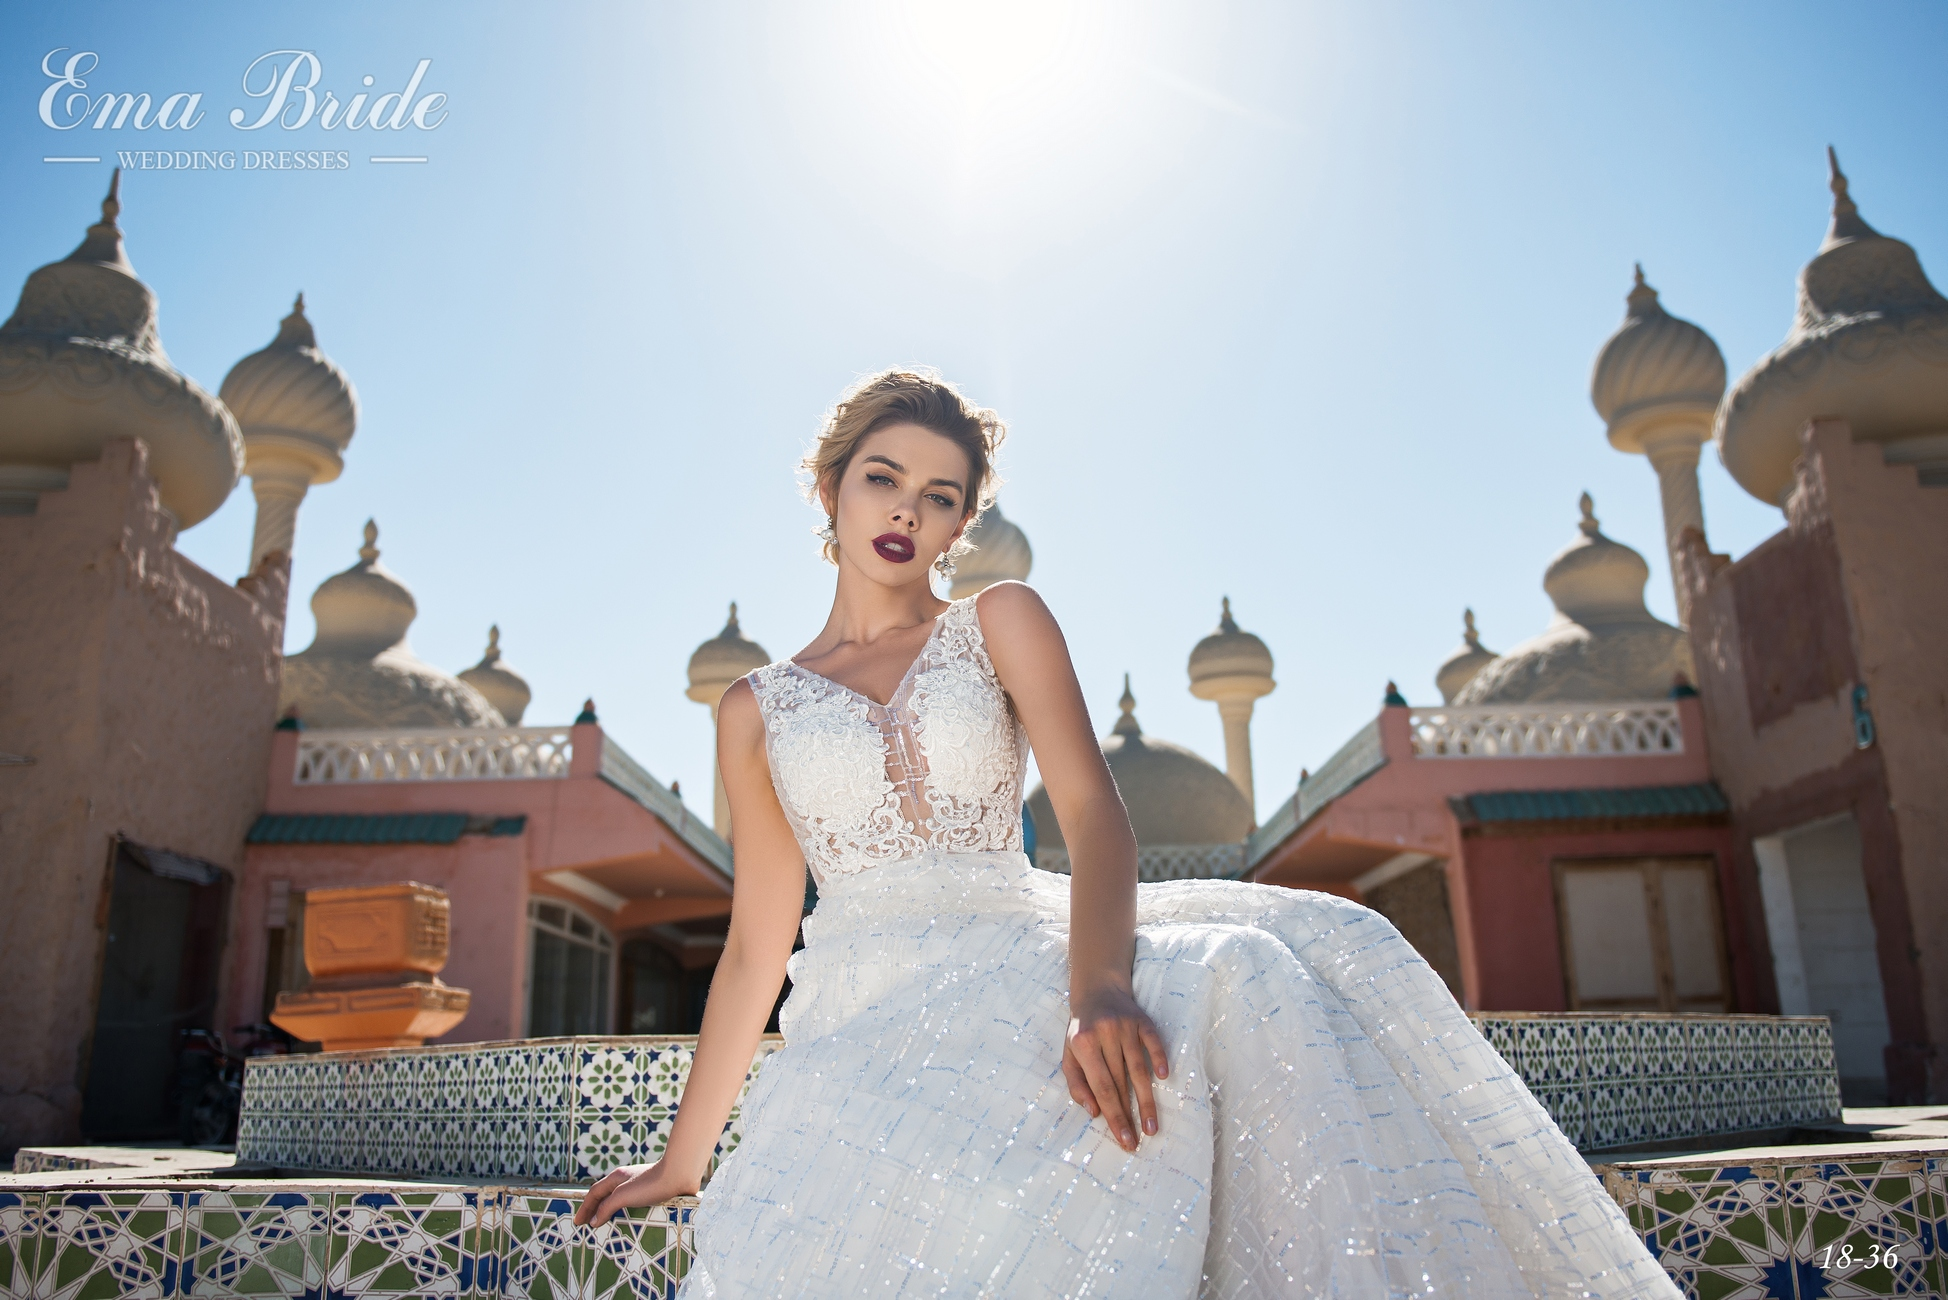 Wedding dress 18-36 wholesale